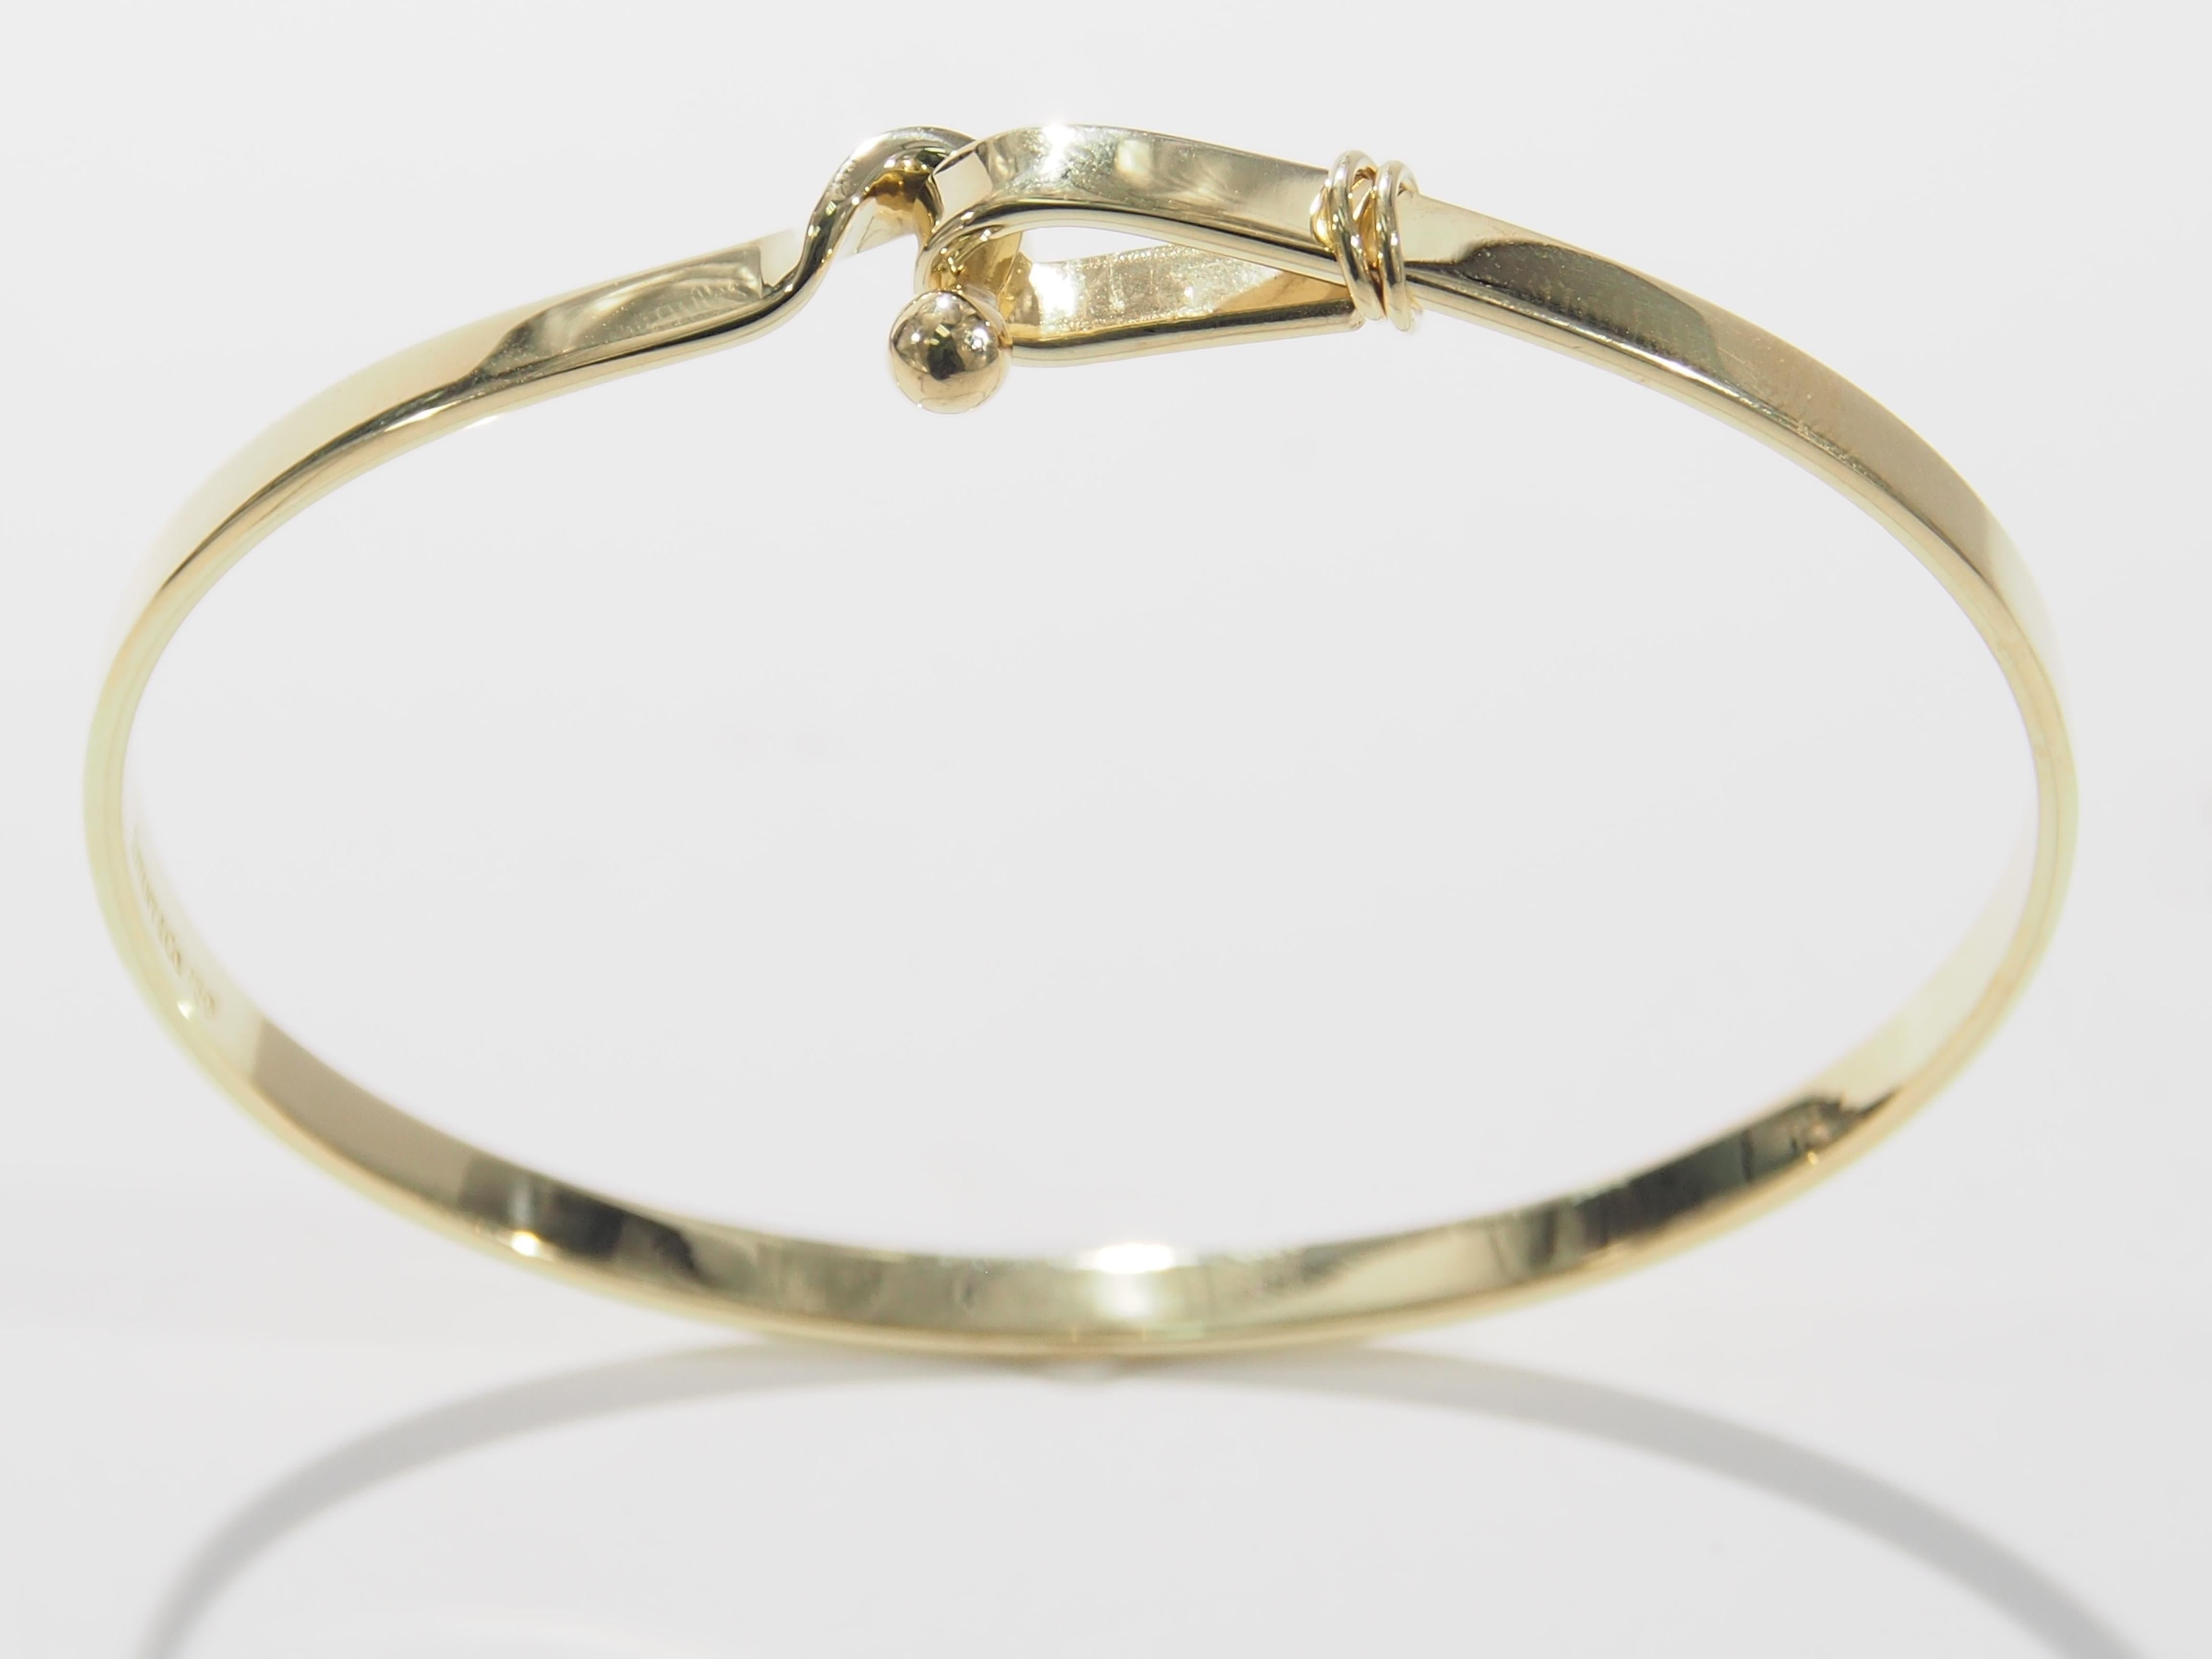 dcd00fd98 Tiffany and Co. Hook and Eye Bangle Bracelet Yellow Gold 18 Karat For Sale  at 1stdibs